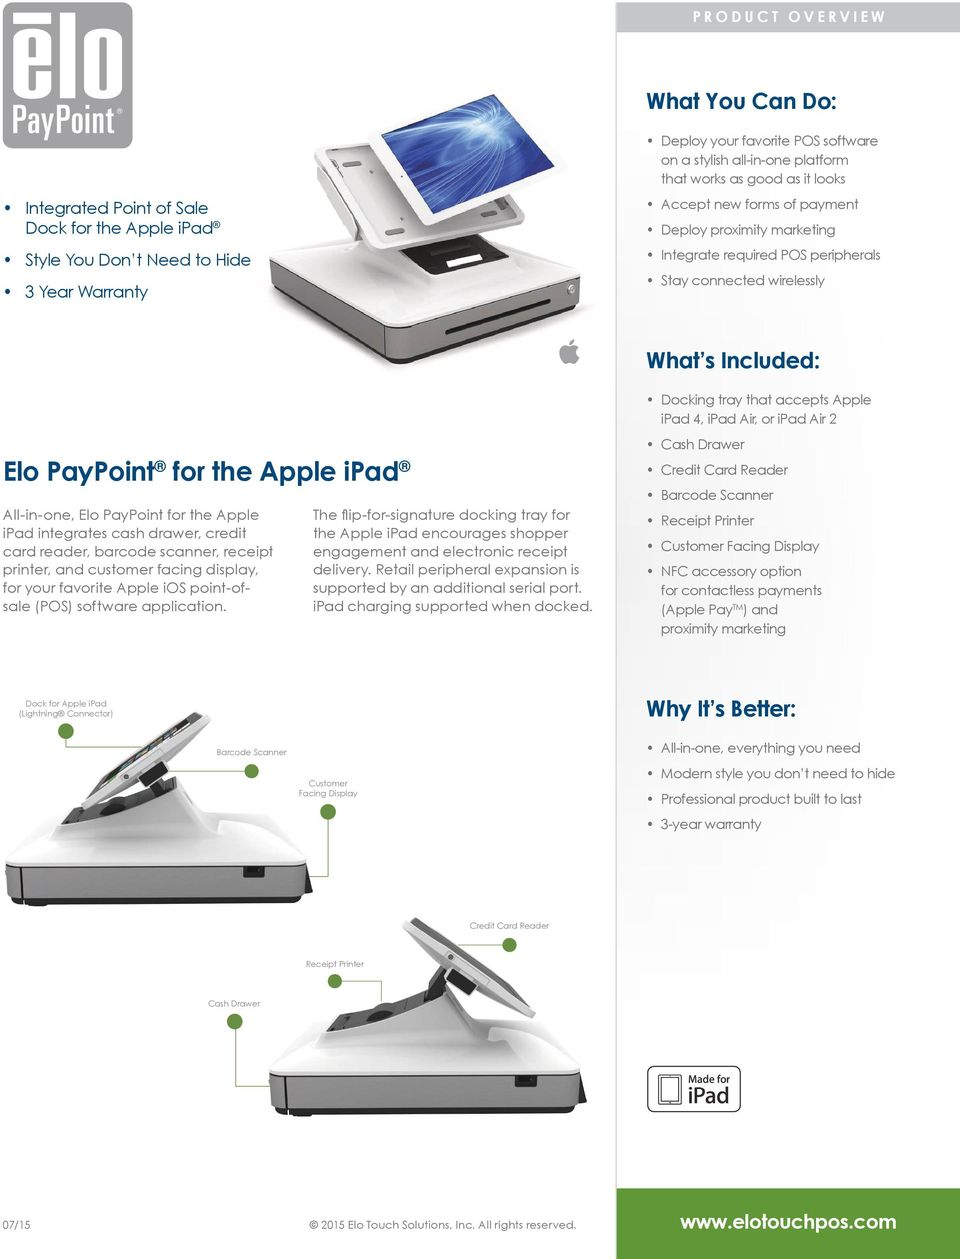 All-in-one, Elo PayPoint for the Apple ipad integrates cash drawer, credit card reader, barcode scanner, receipt printer, and customer facing display, for your favorite Apple ios point-ofsale (POS)